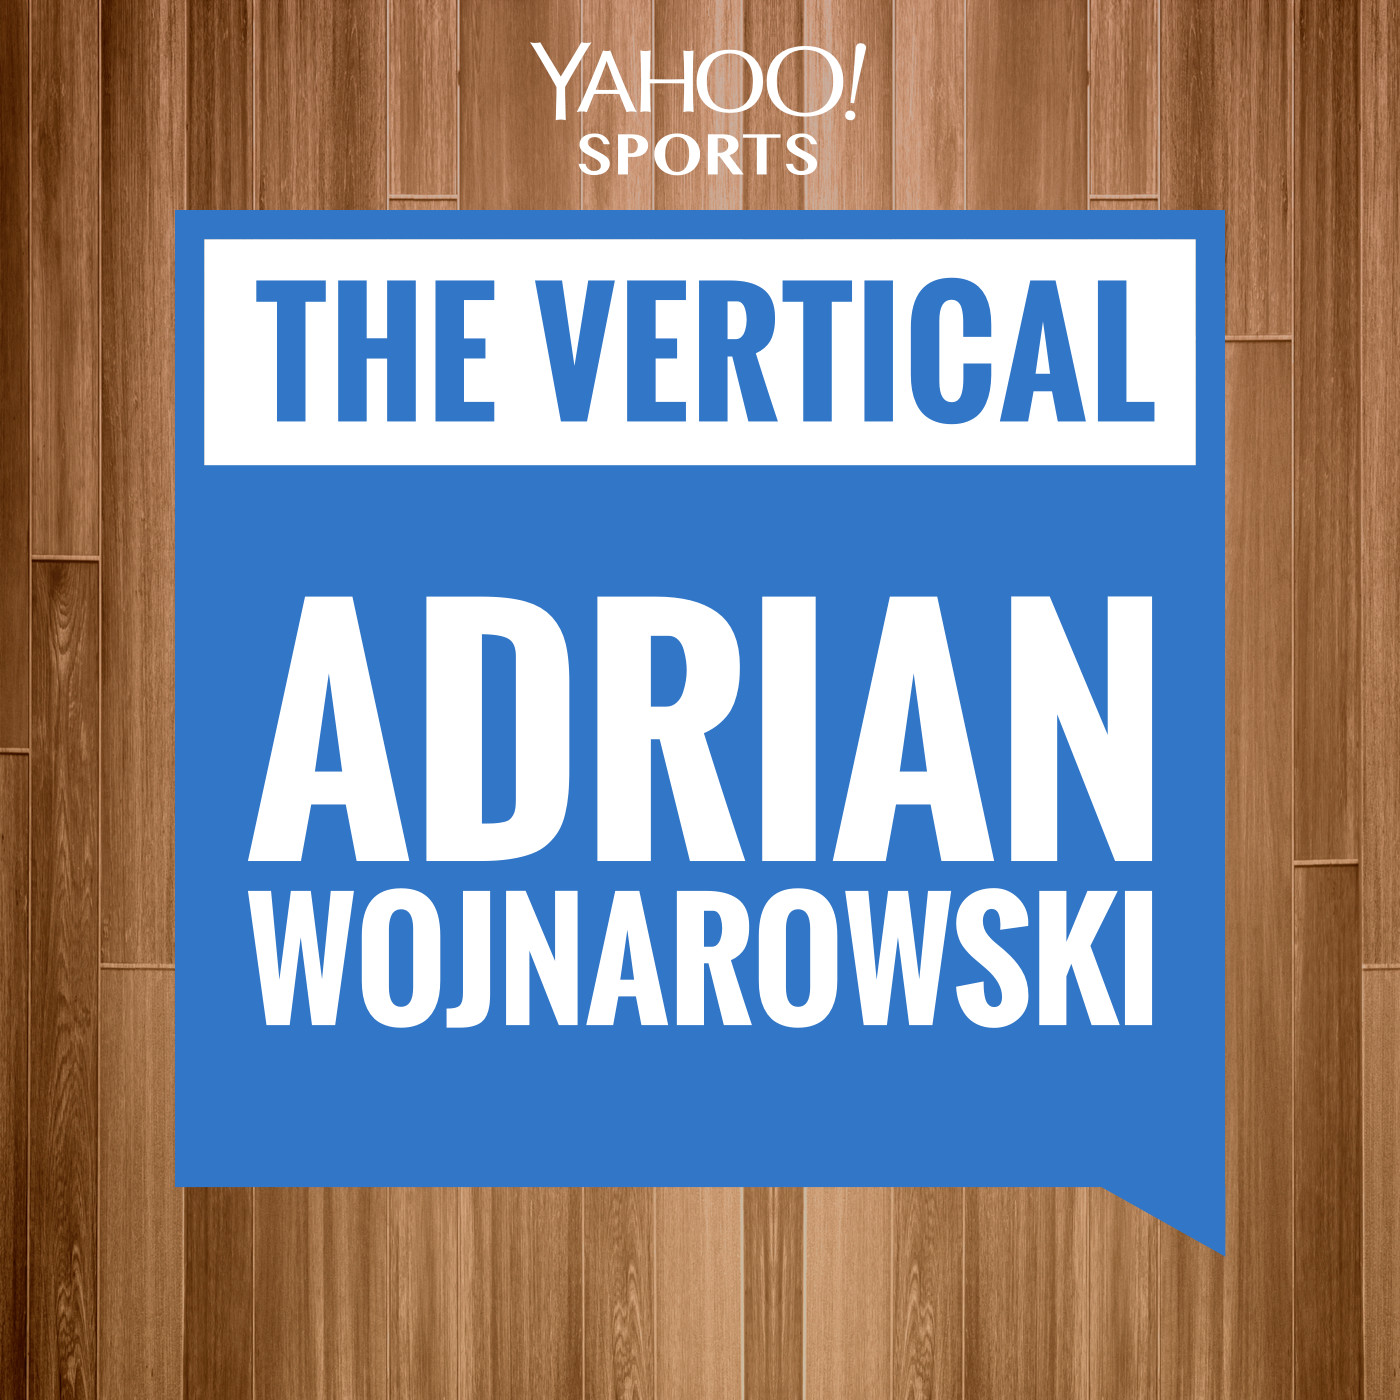 The Vertical Podcast with Woj